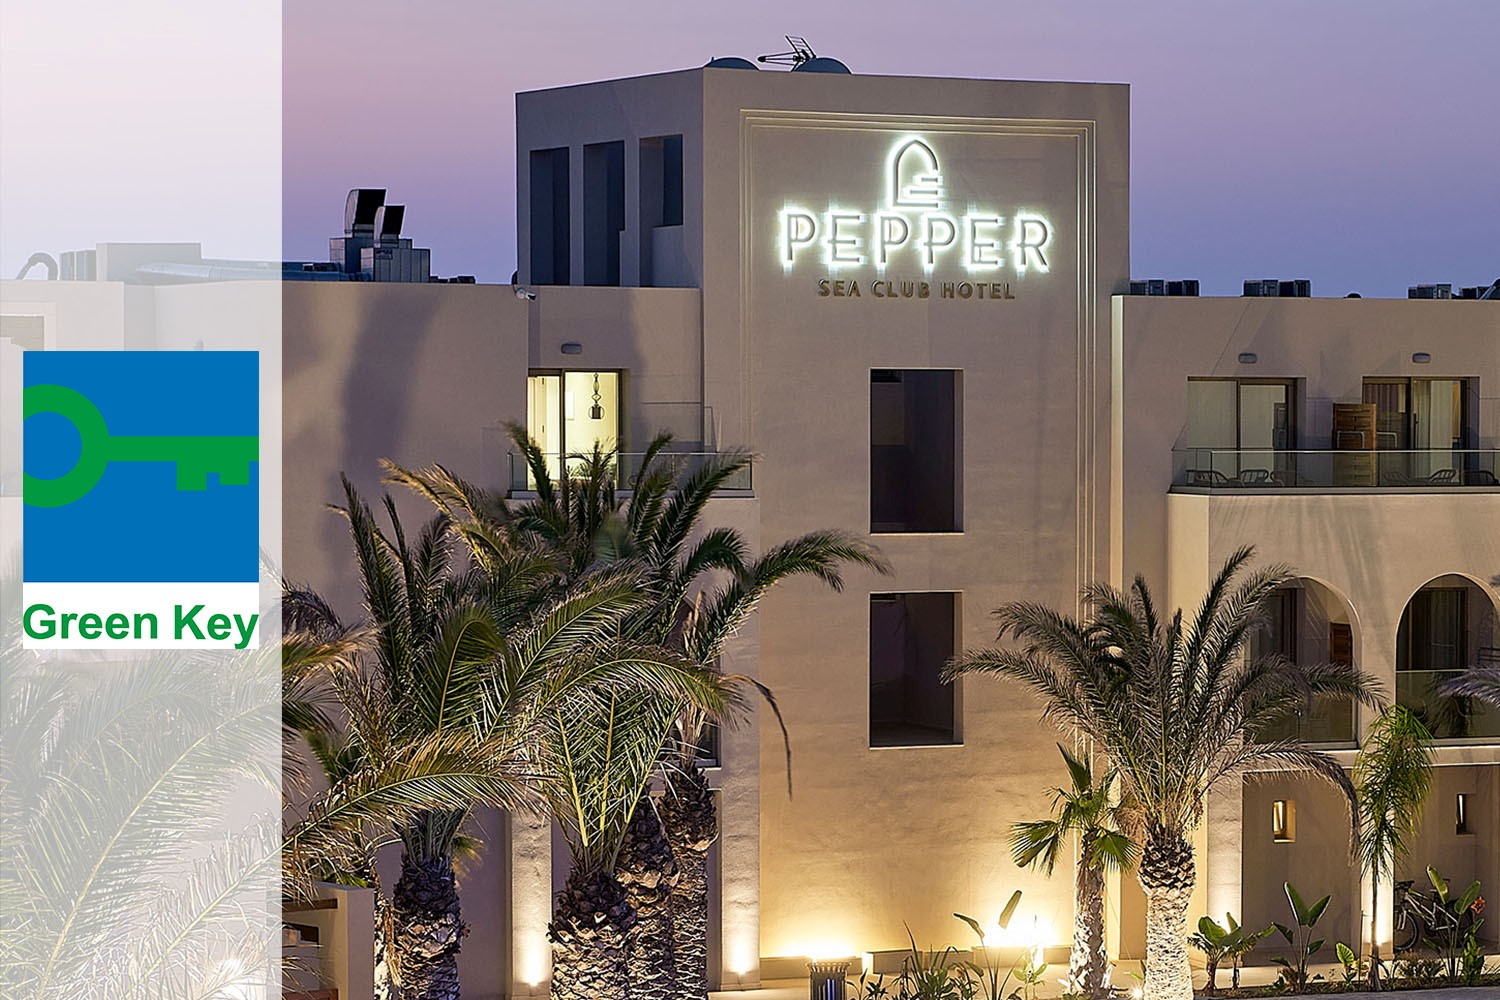 We Are Very Proud To Announce Pepper Sea Club Hotel Is Awarded The Green Key Eco-label!